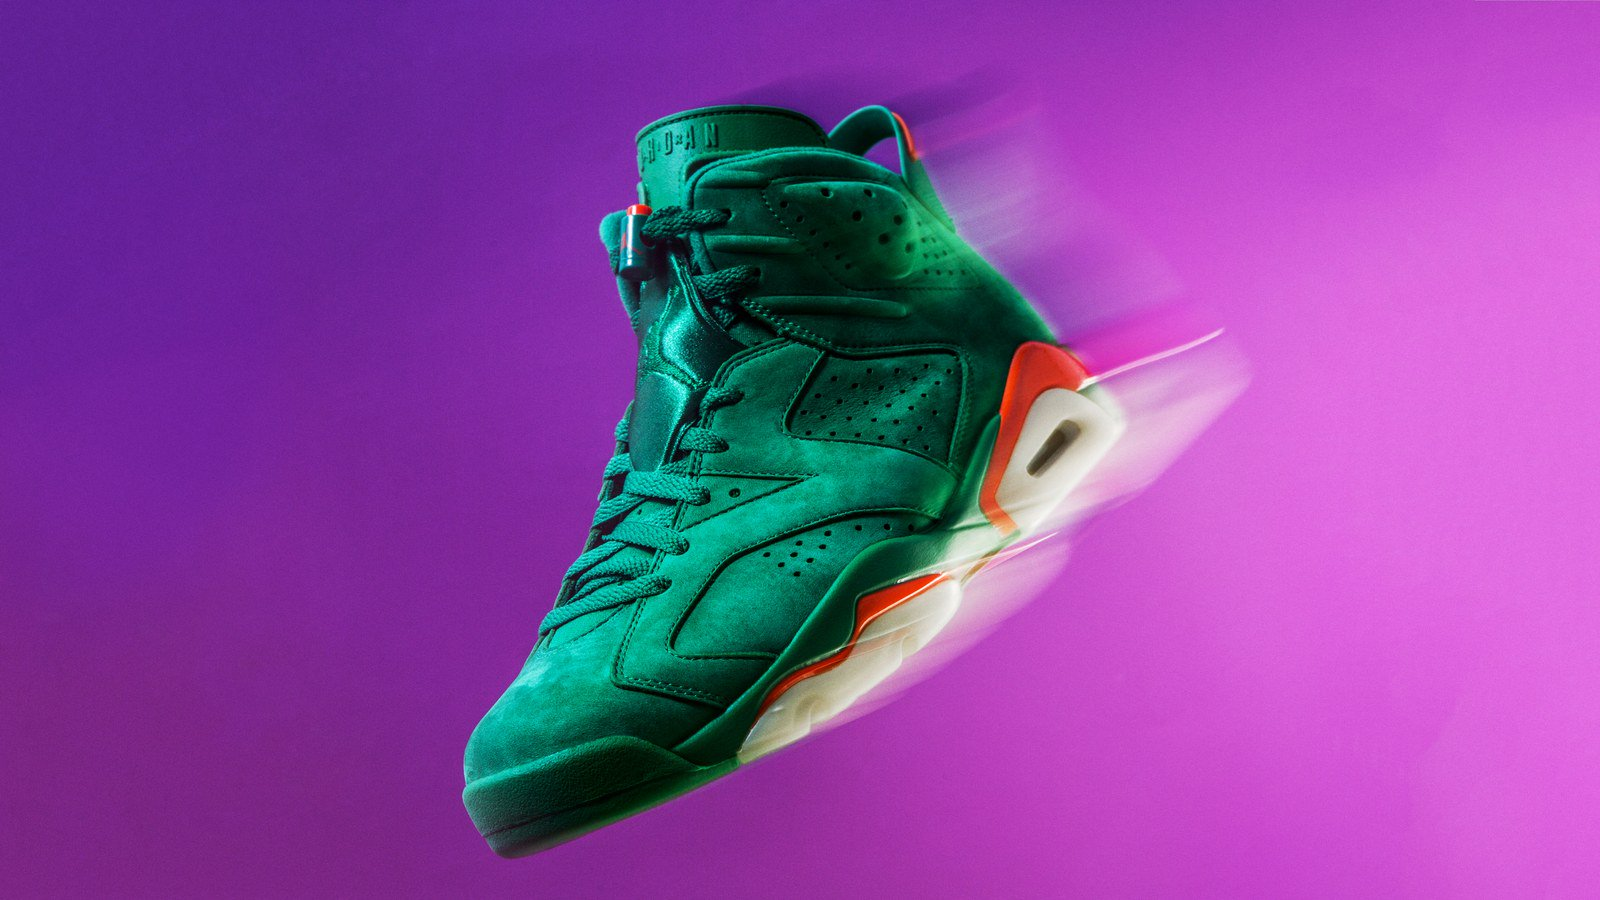 Feast your eyes on the brand new Air Jordan 6 'Gatorade' in beautiful green suede https://t.co/1wHOPflocW https://t.co/TPYX1yEoON